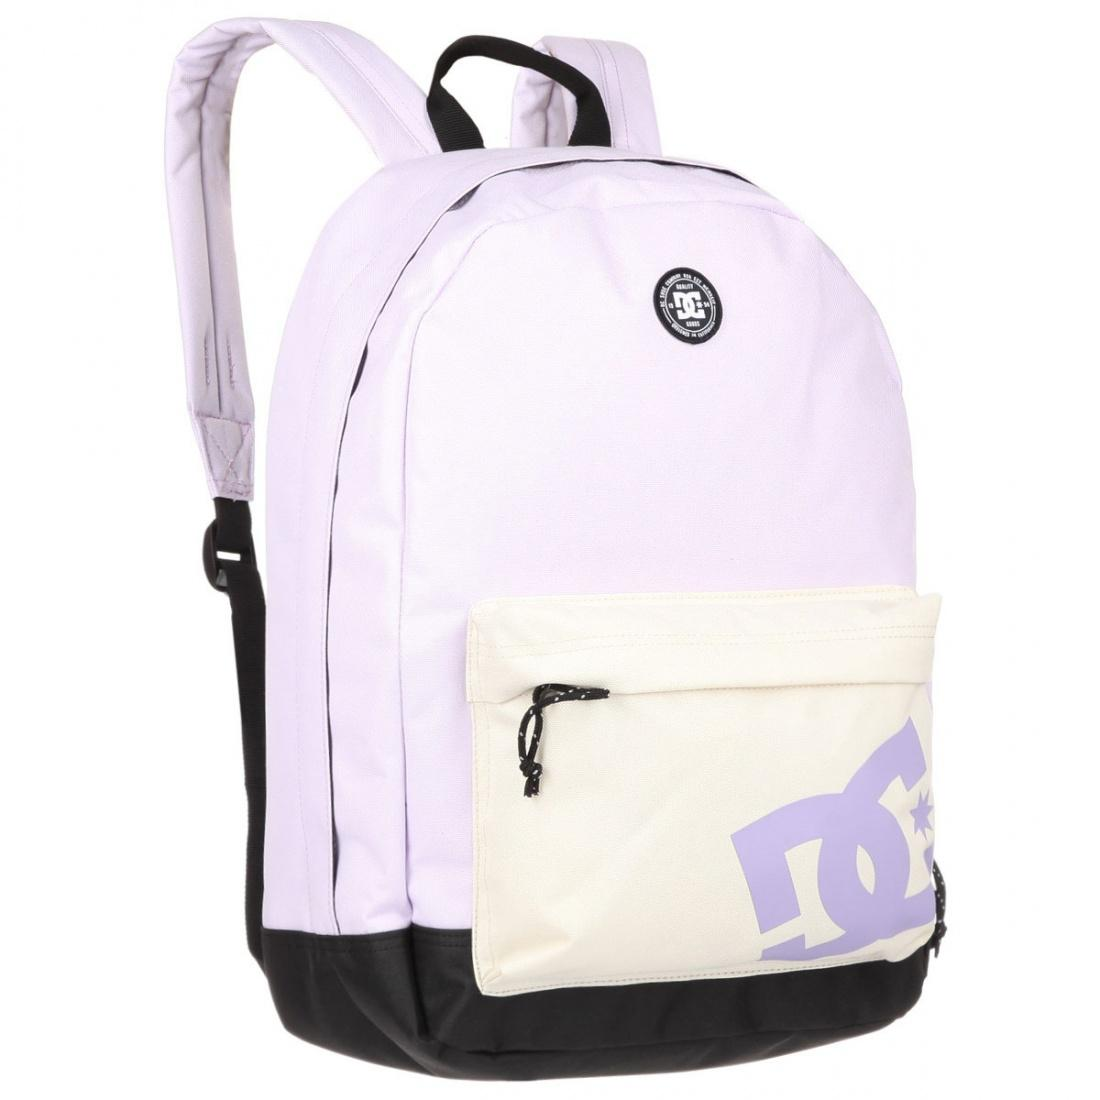 DC SHOES Рюкзак DC shoes Backstack PASTEL LILAC One size dc shoes рюкзак dc shoes backstack dc wheat fw17 one size